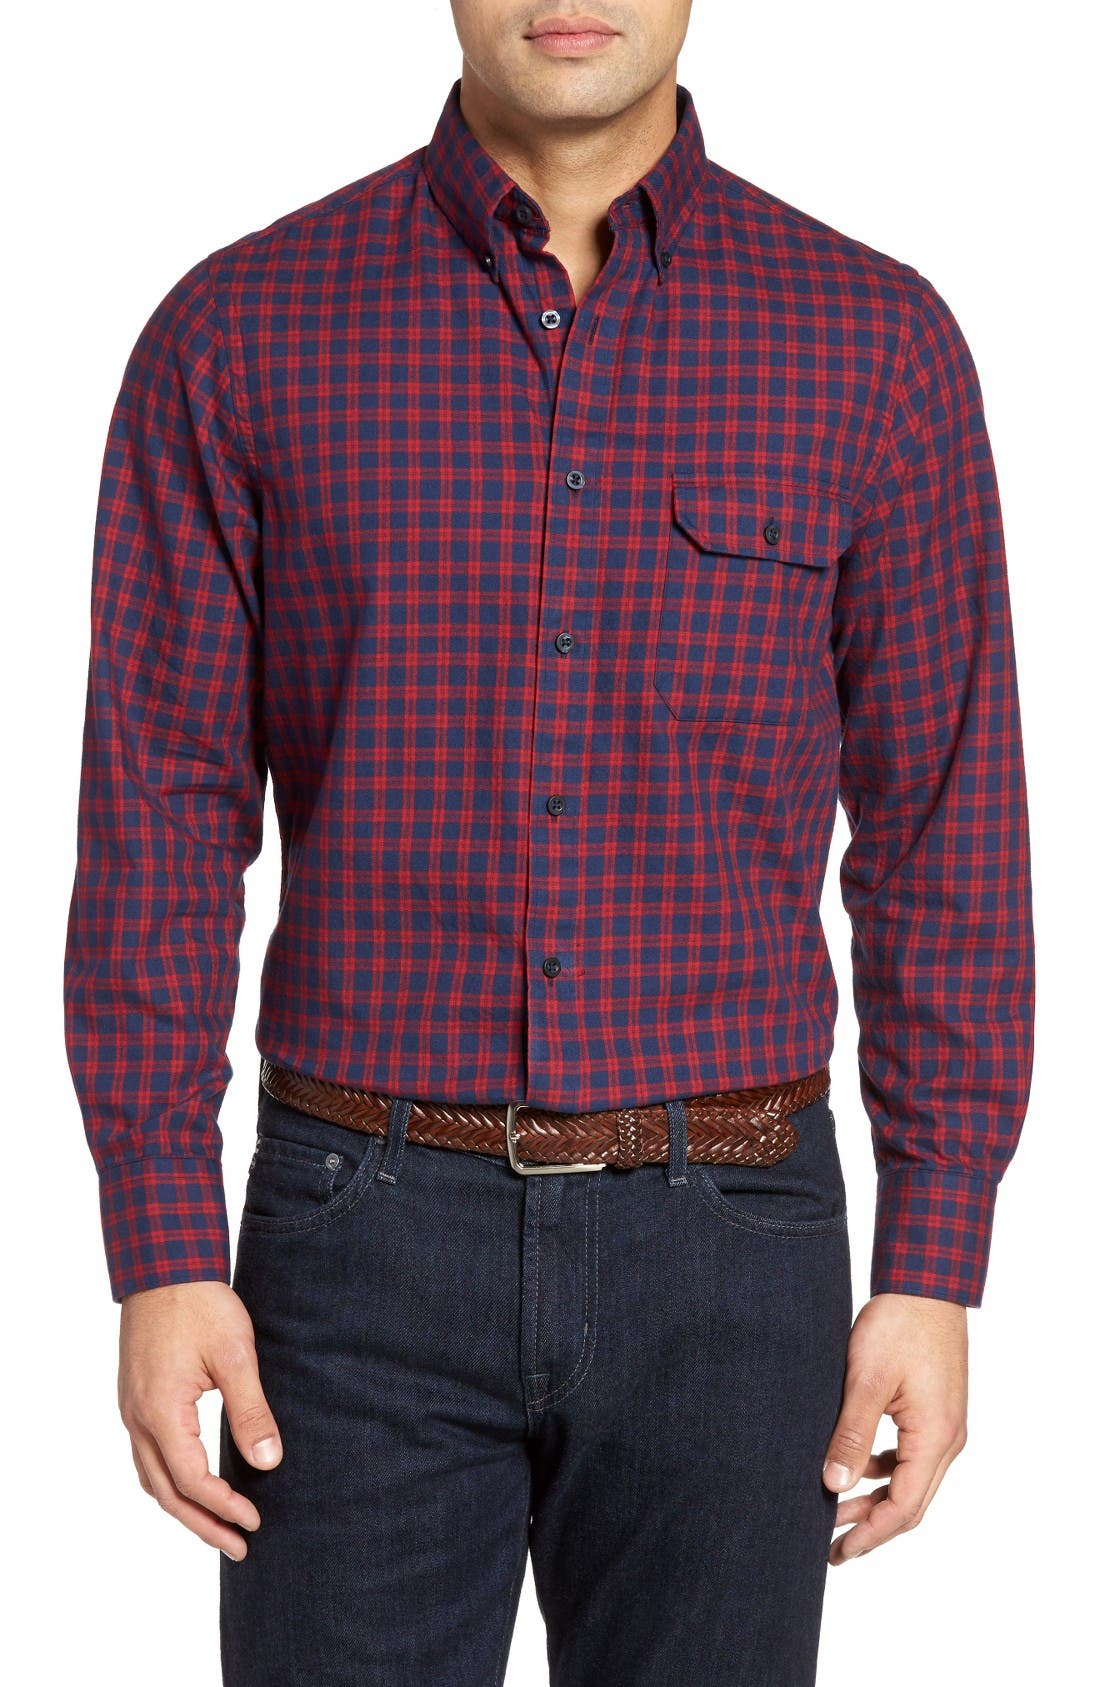 Main Image - Nordstrom Men's Shop Classic Regular Fit Plaid Flannel Sport Shirt (Regular & Tall)